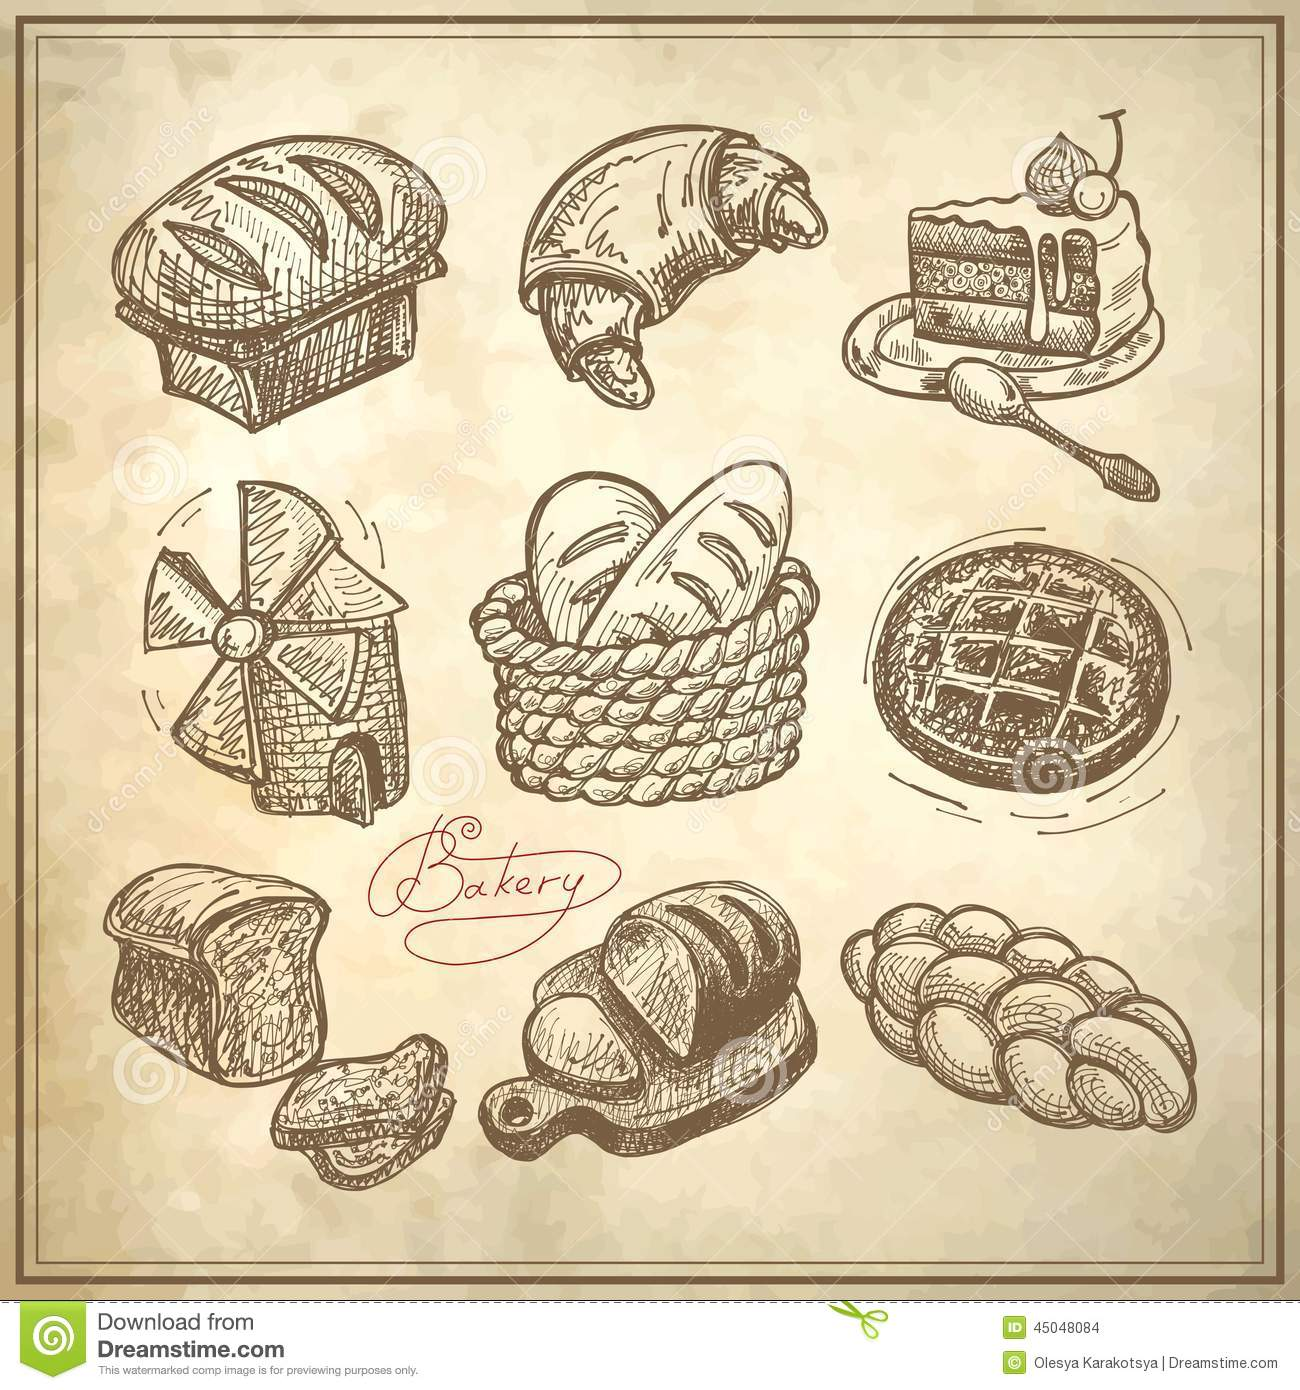 1000 images about boulangerie on pinterest patisserie - Dessin boulangerie patisserie ...